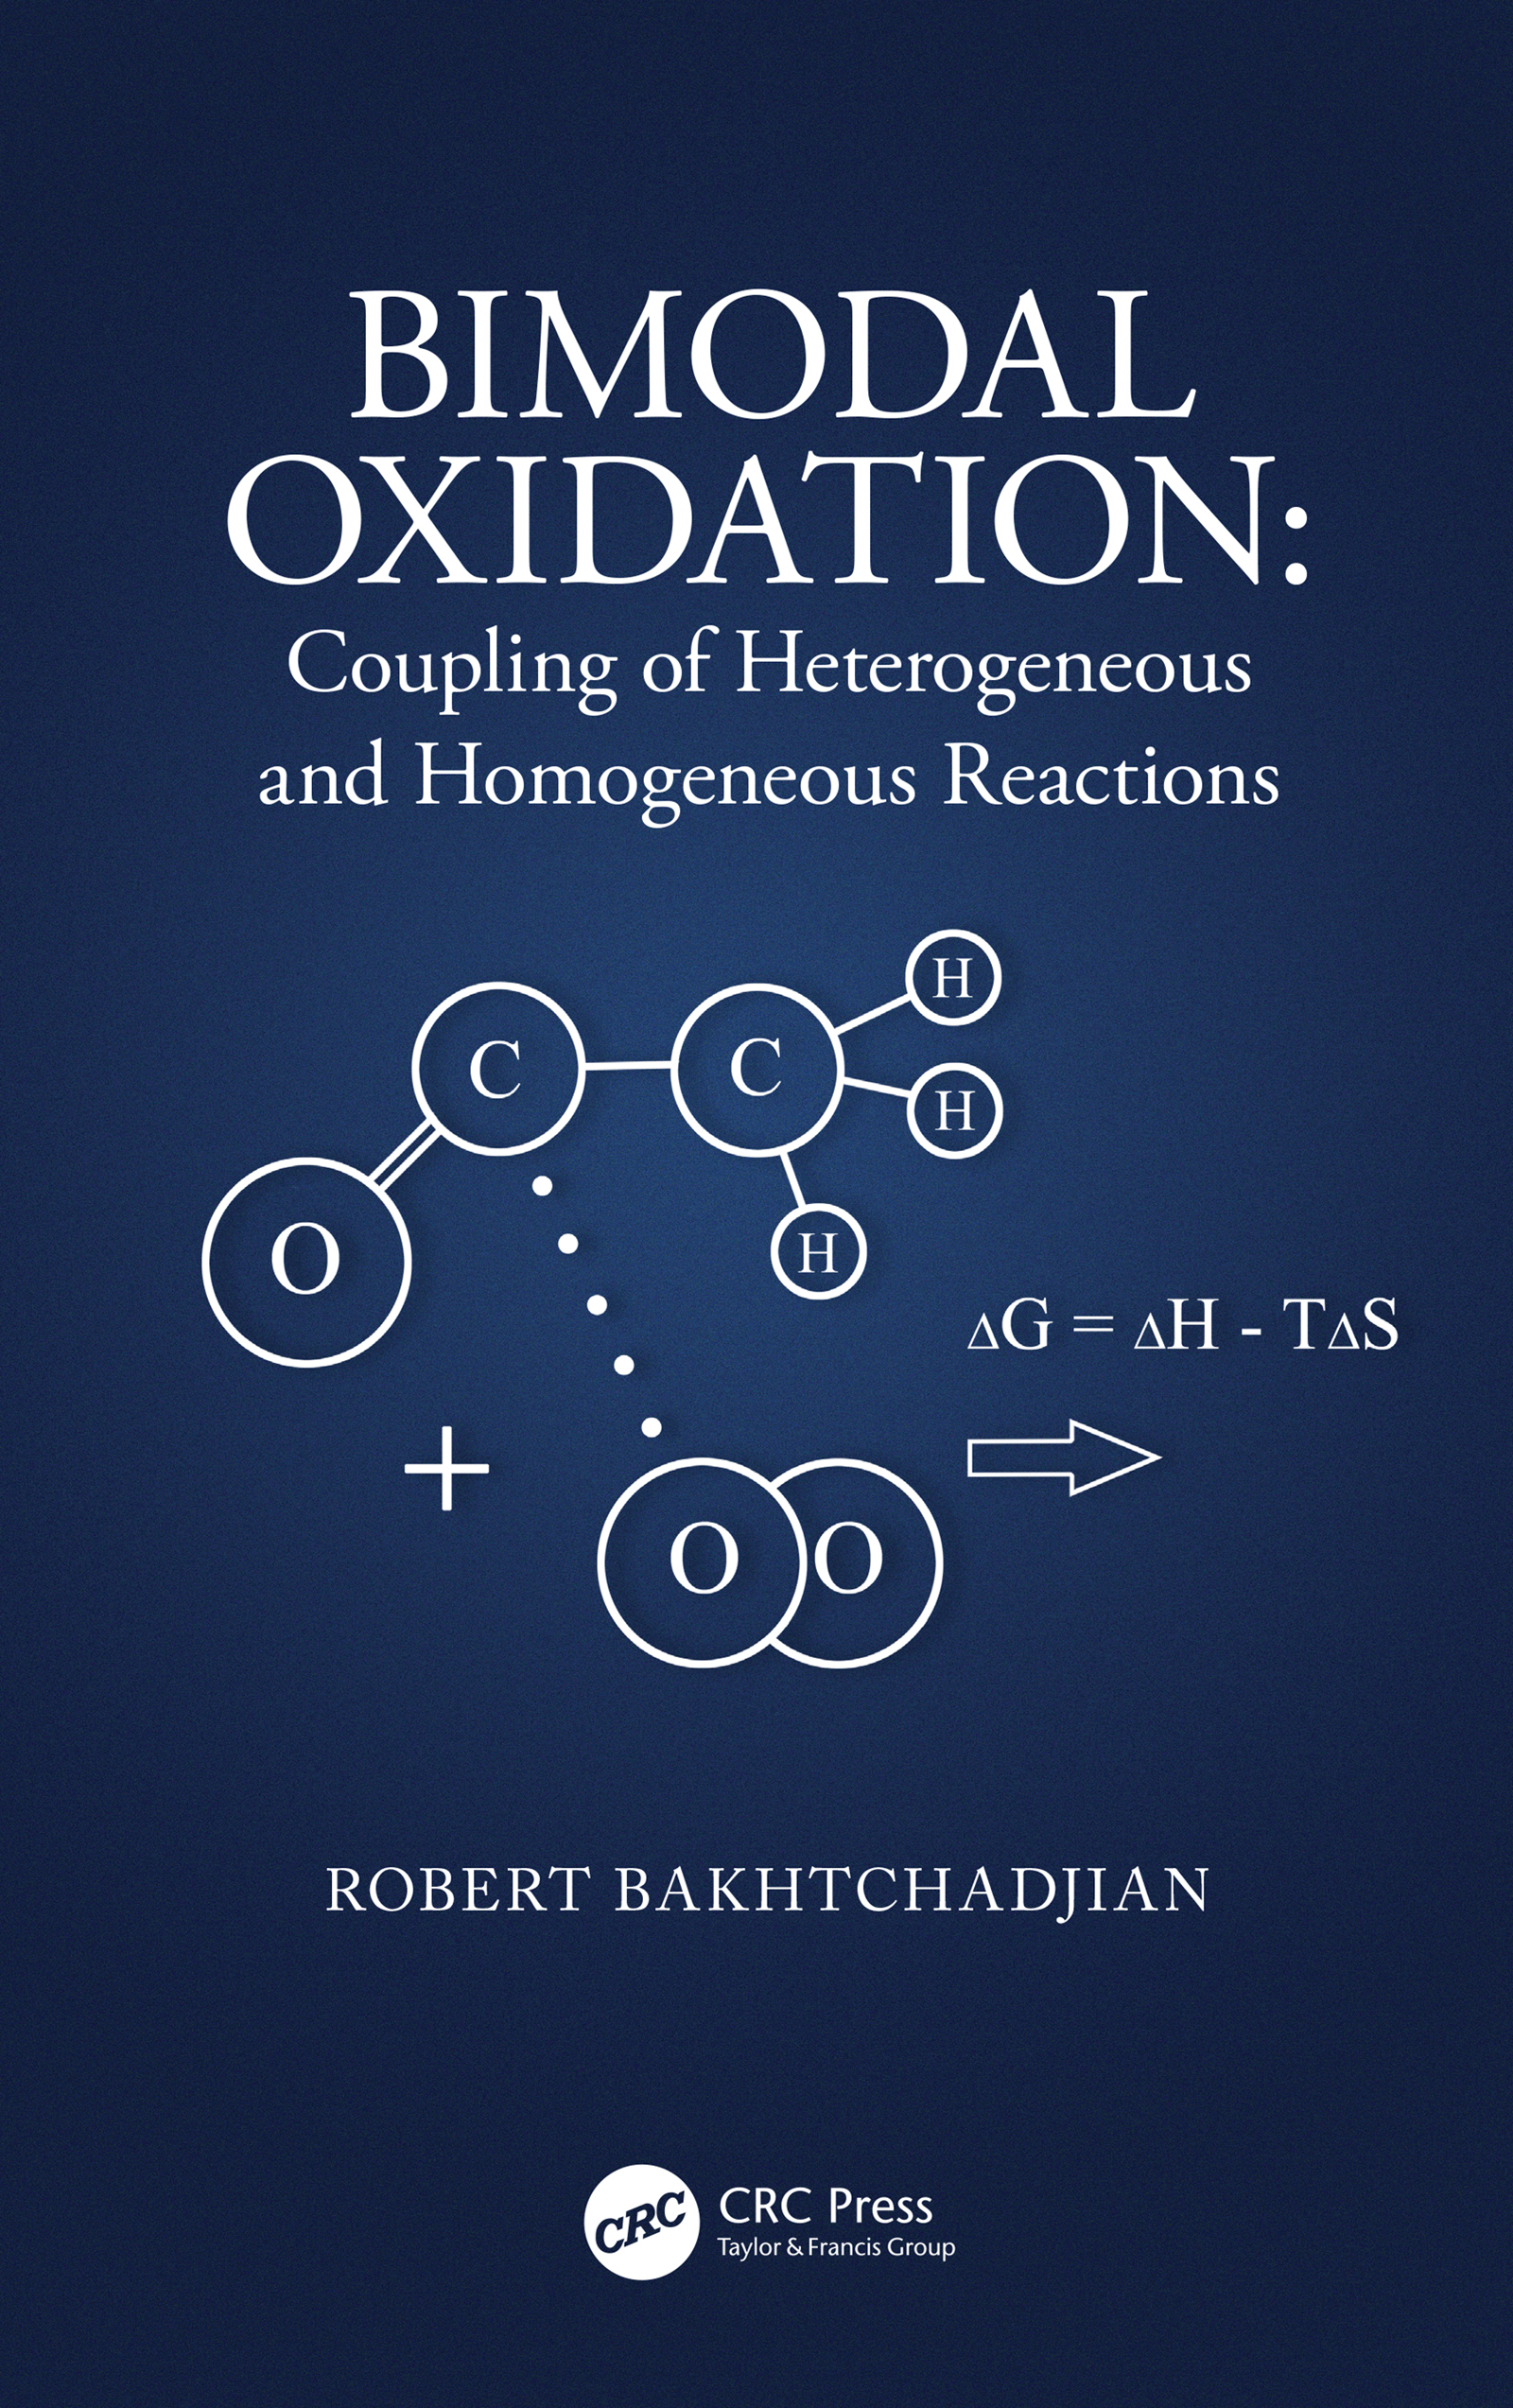 Bimodal Oxidation: Coupling of Heterogeneous and Homogeneous Reactions book cover